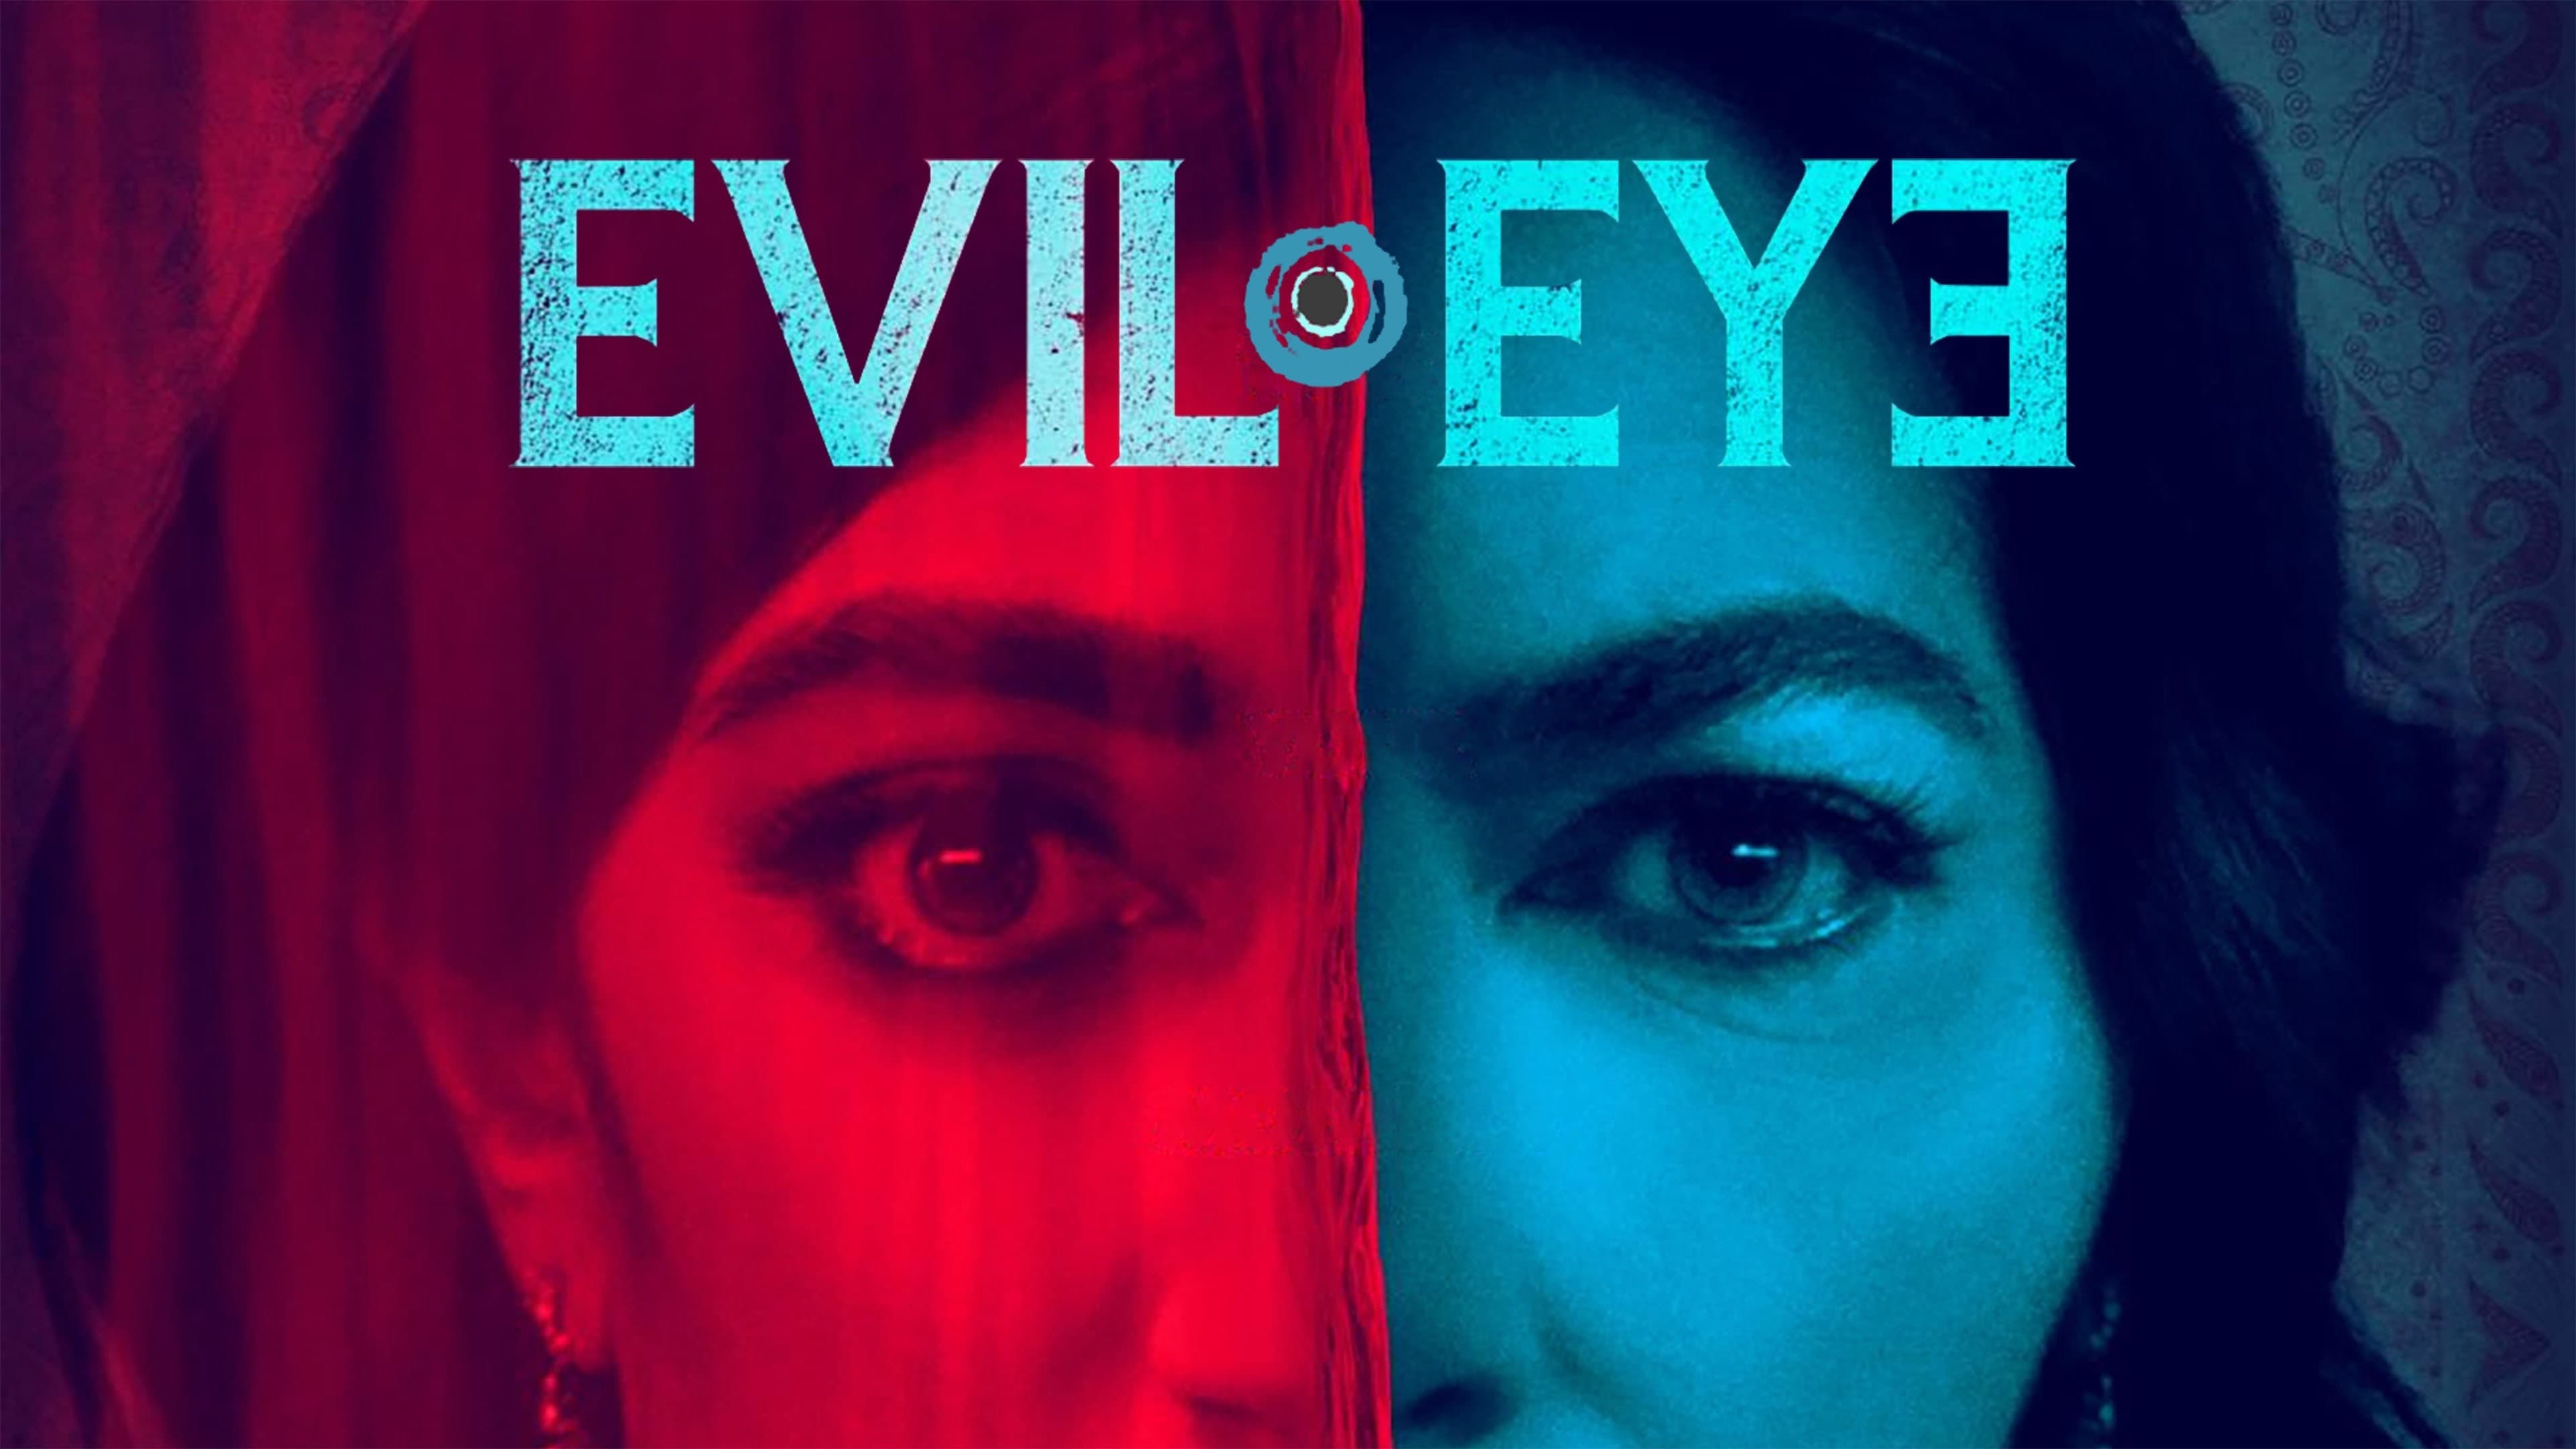 Watch Evil Eye (2020) Full Movie Online Free | Stream Free Movies & TV Shows